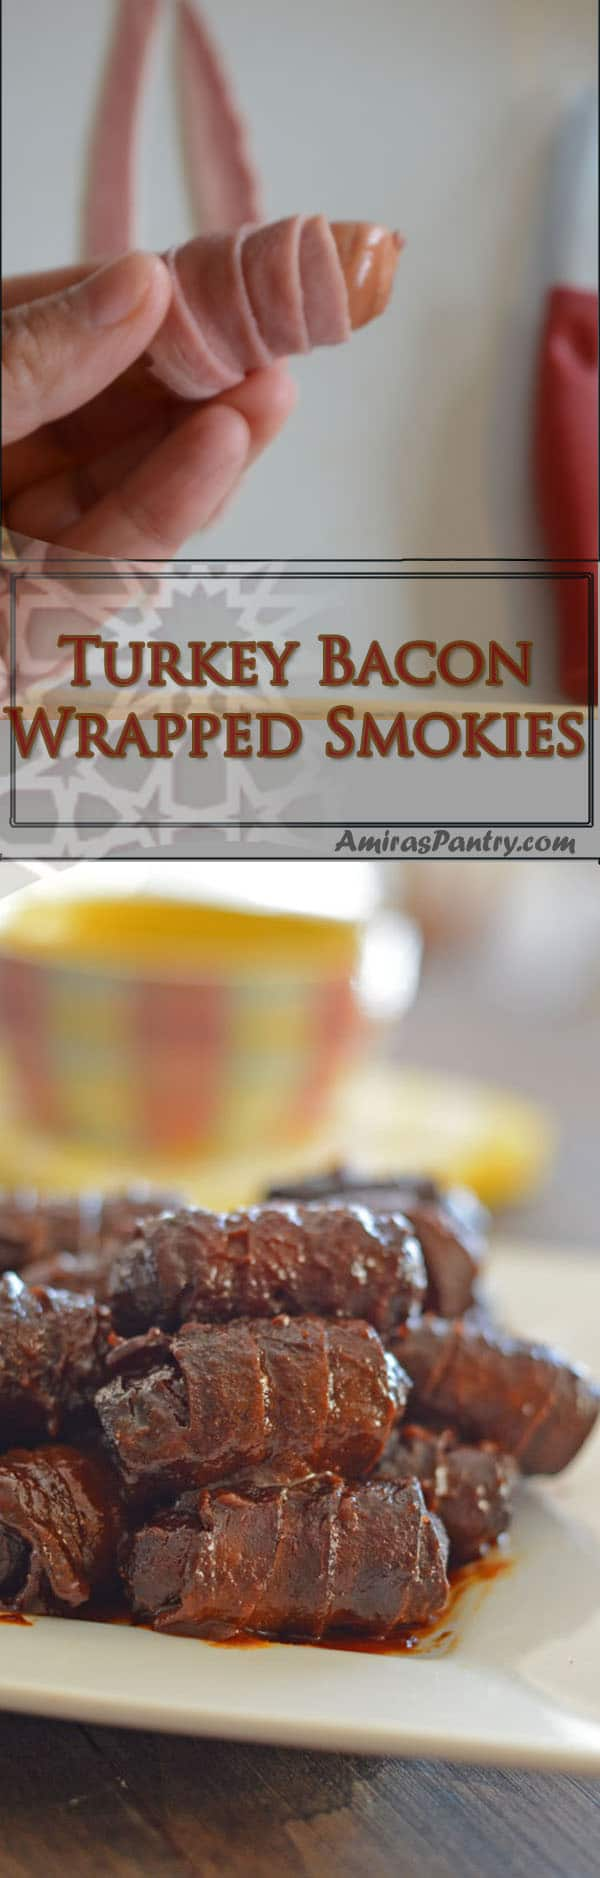 Embrace the sweeter side of the BBQ sauce and whip up a wonderful, easy appetizer for your next party. With the use of your crockpot, thisbecomes an almost effortless bacon wrapped smokies recipe.